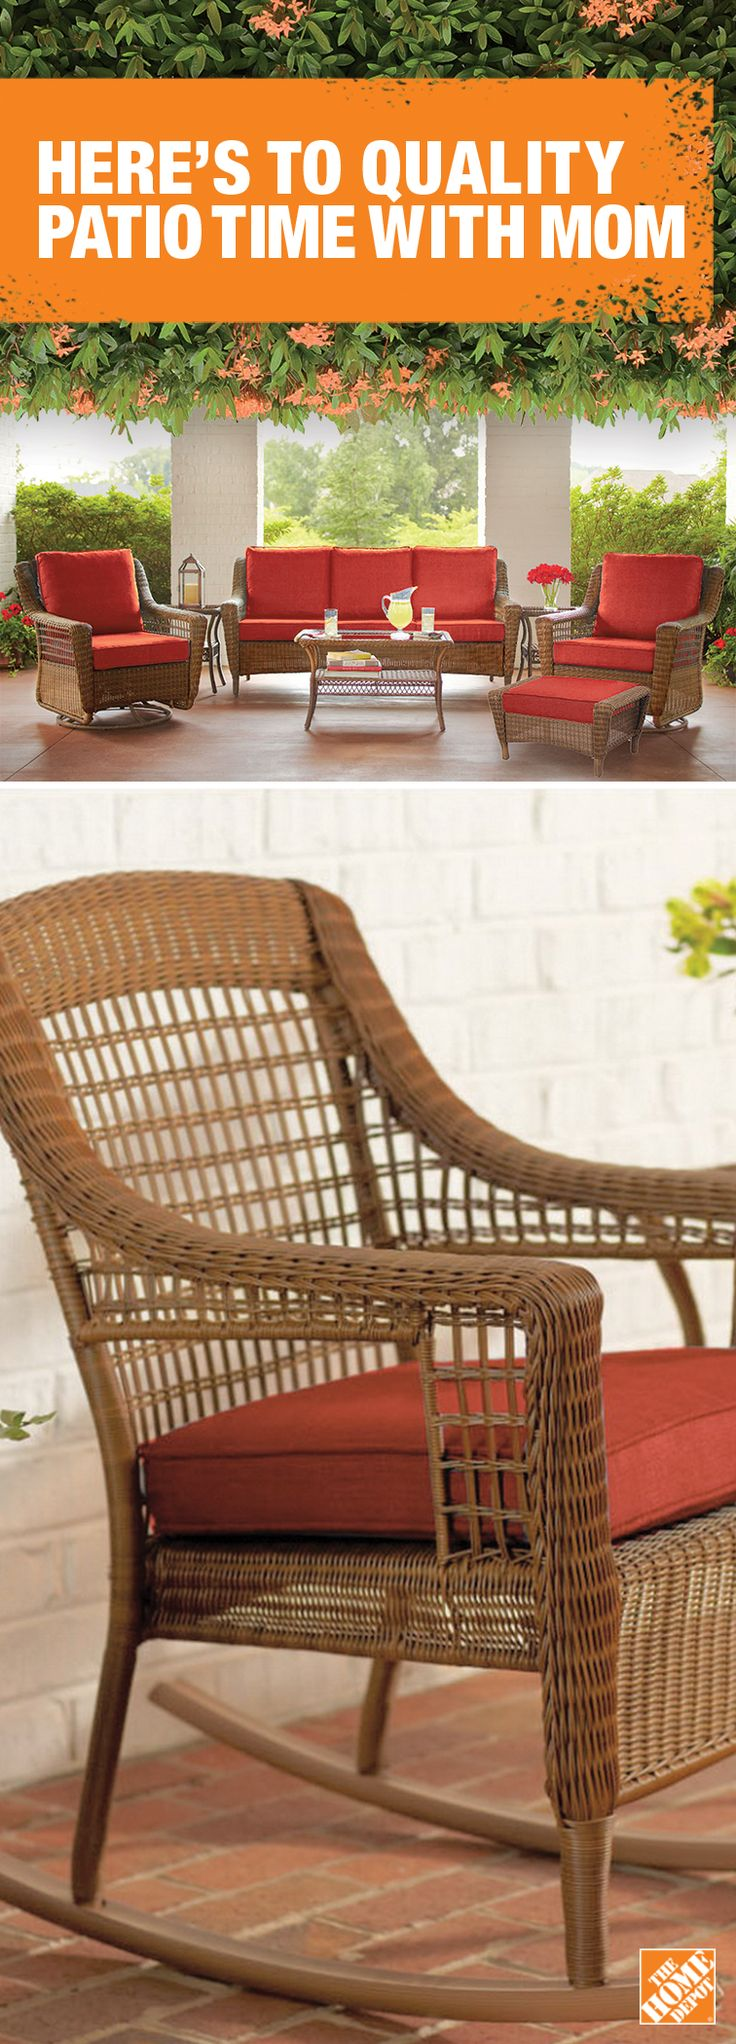 Give mom's patio a heart-warming, natural feel with this intricately woven, wicker furniture. Shop now at HomeDepot.ca: http://hdepot.ca/2pAXJ2R